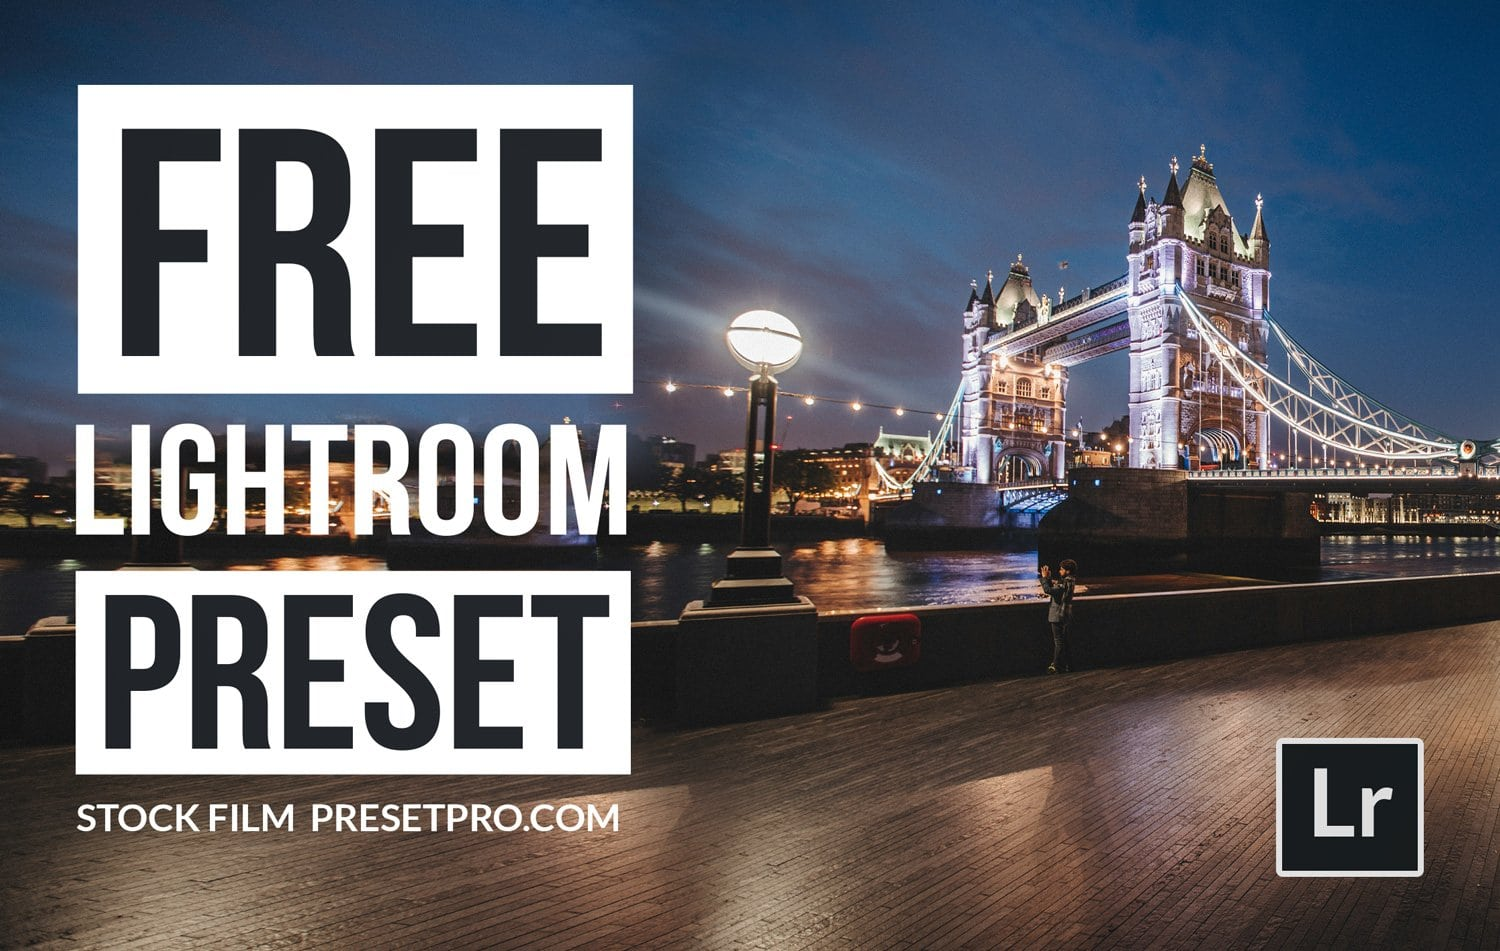 Free-Lightroom-Preset-Stock-Film-Cover-Presetpro.com